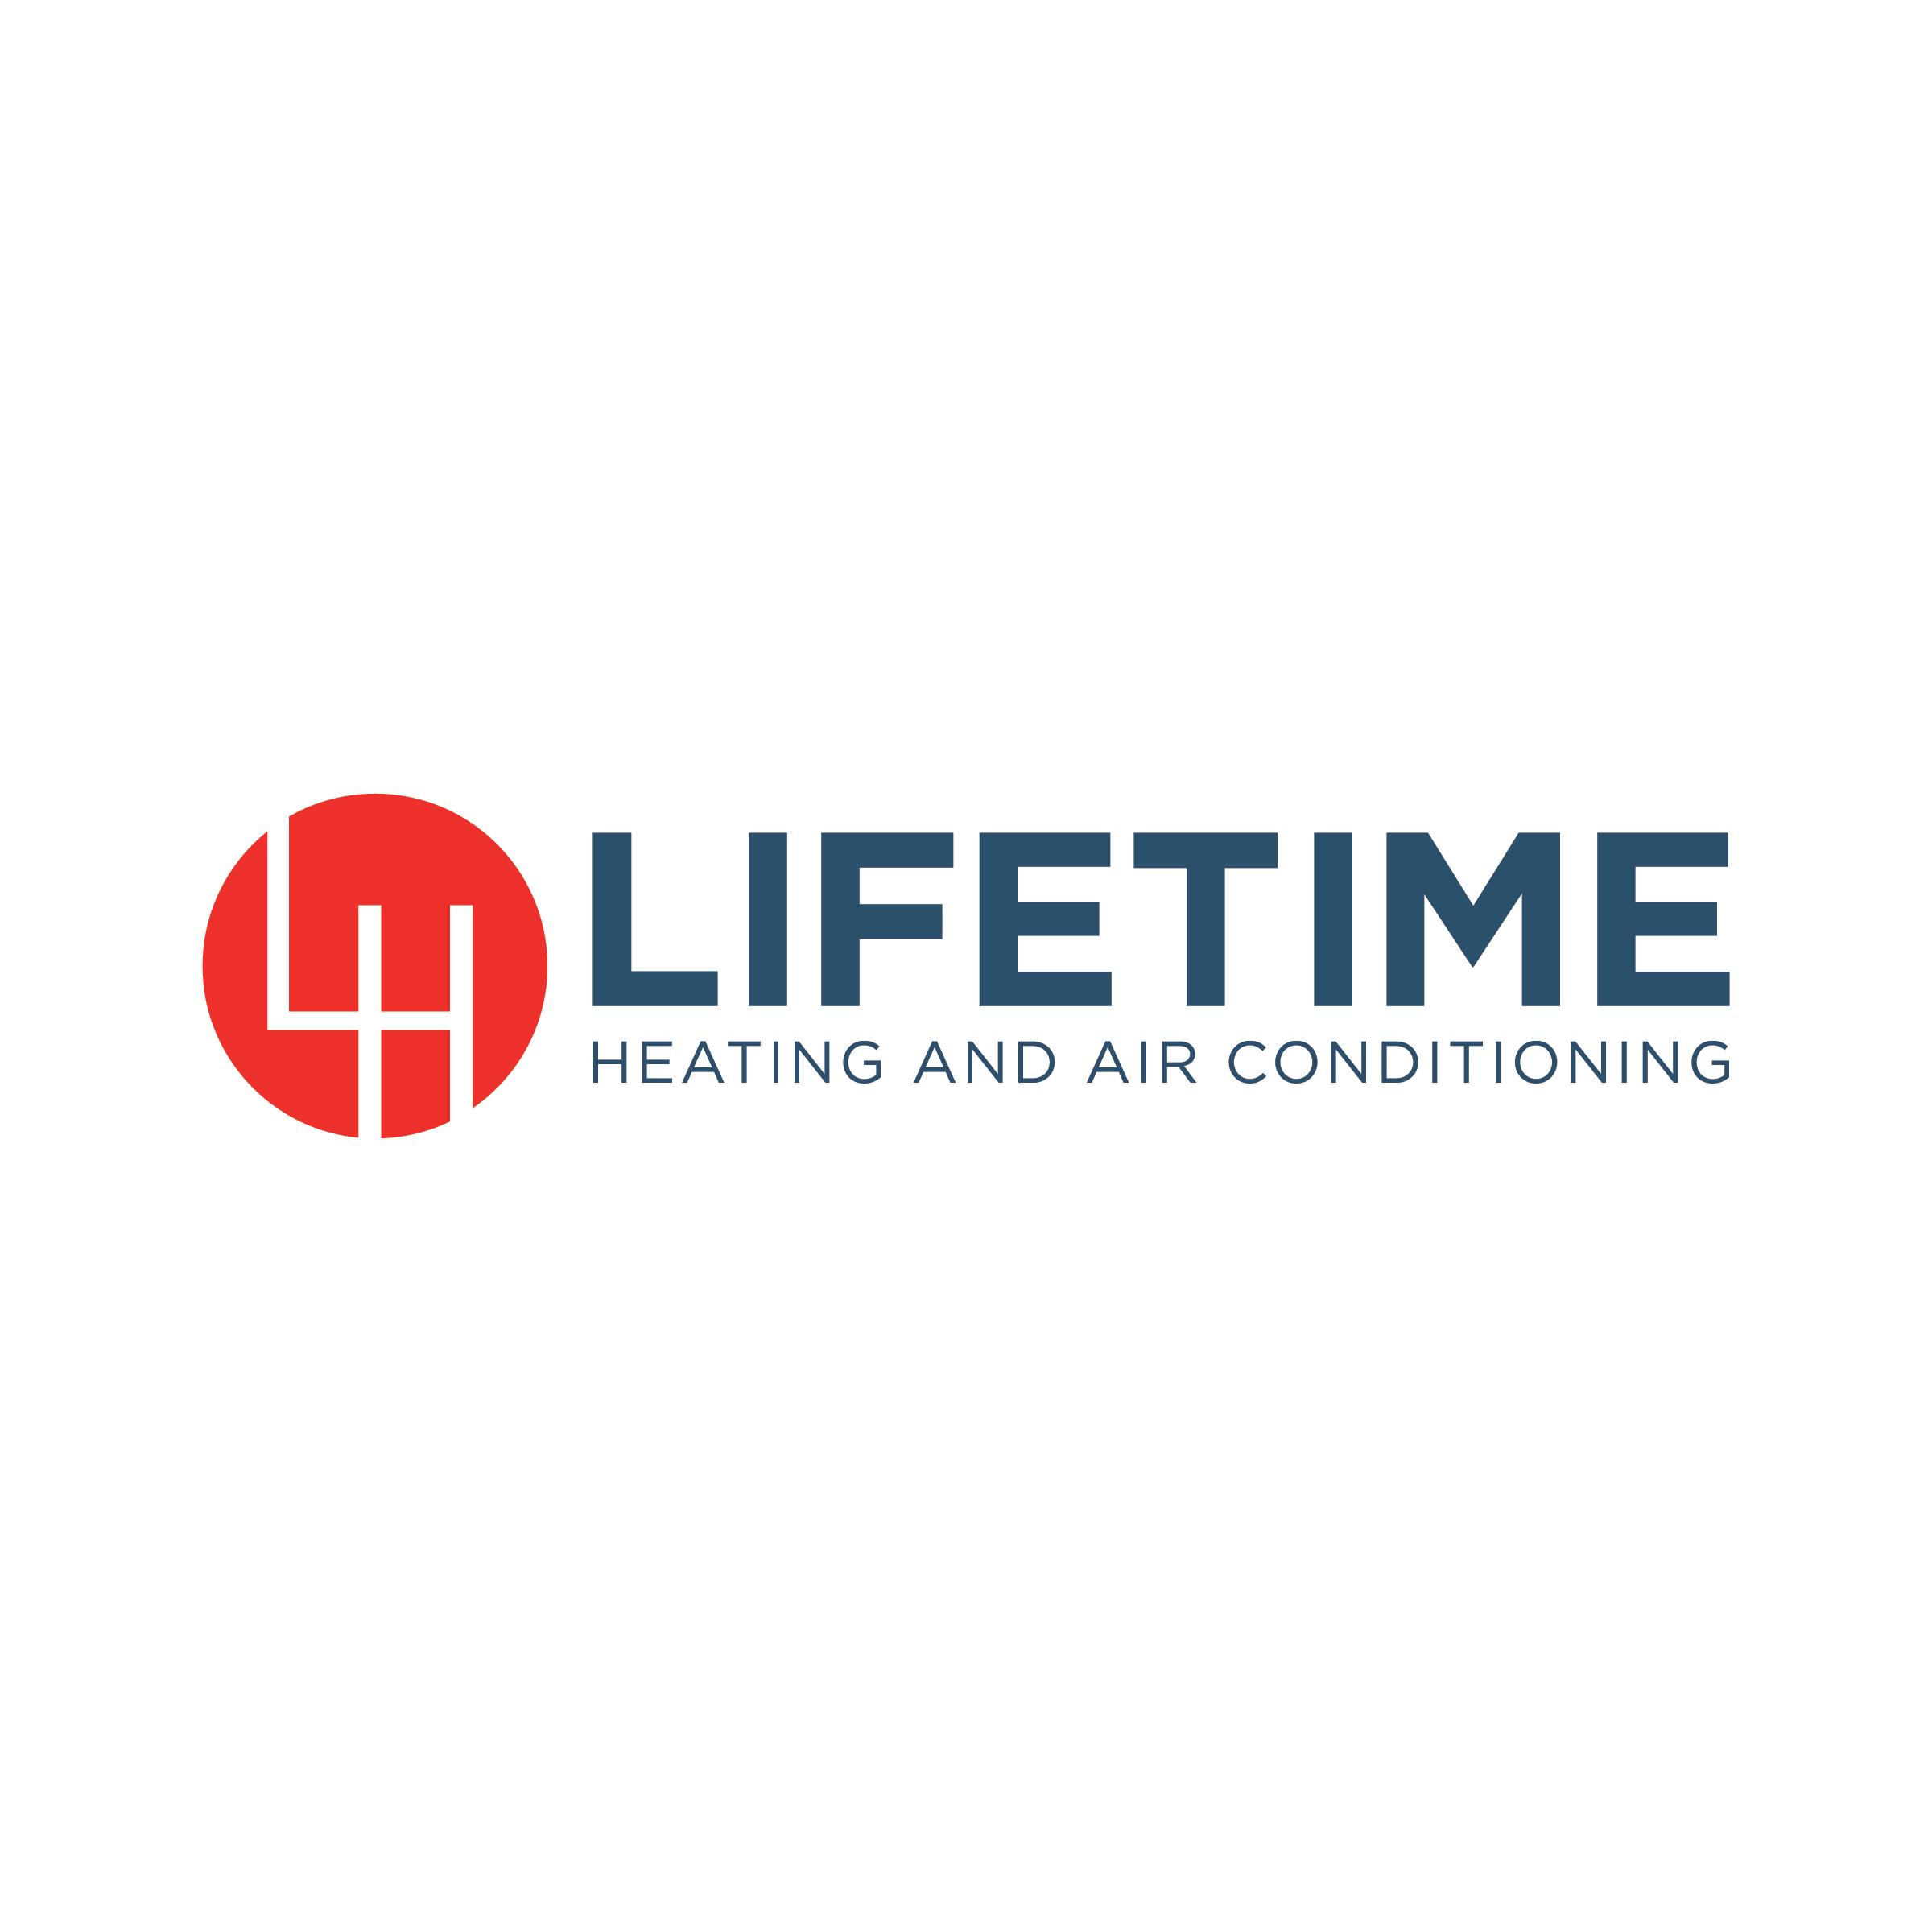 Lifetime Heating and Air Conditioning